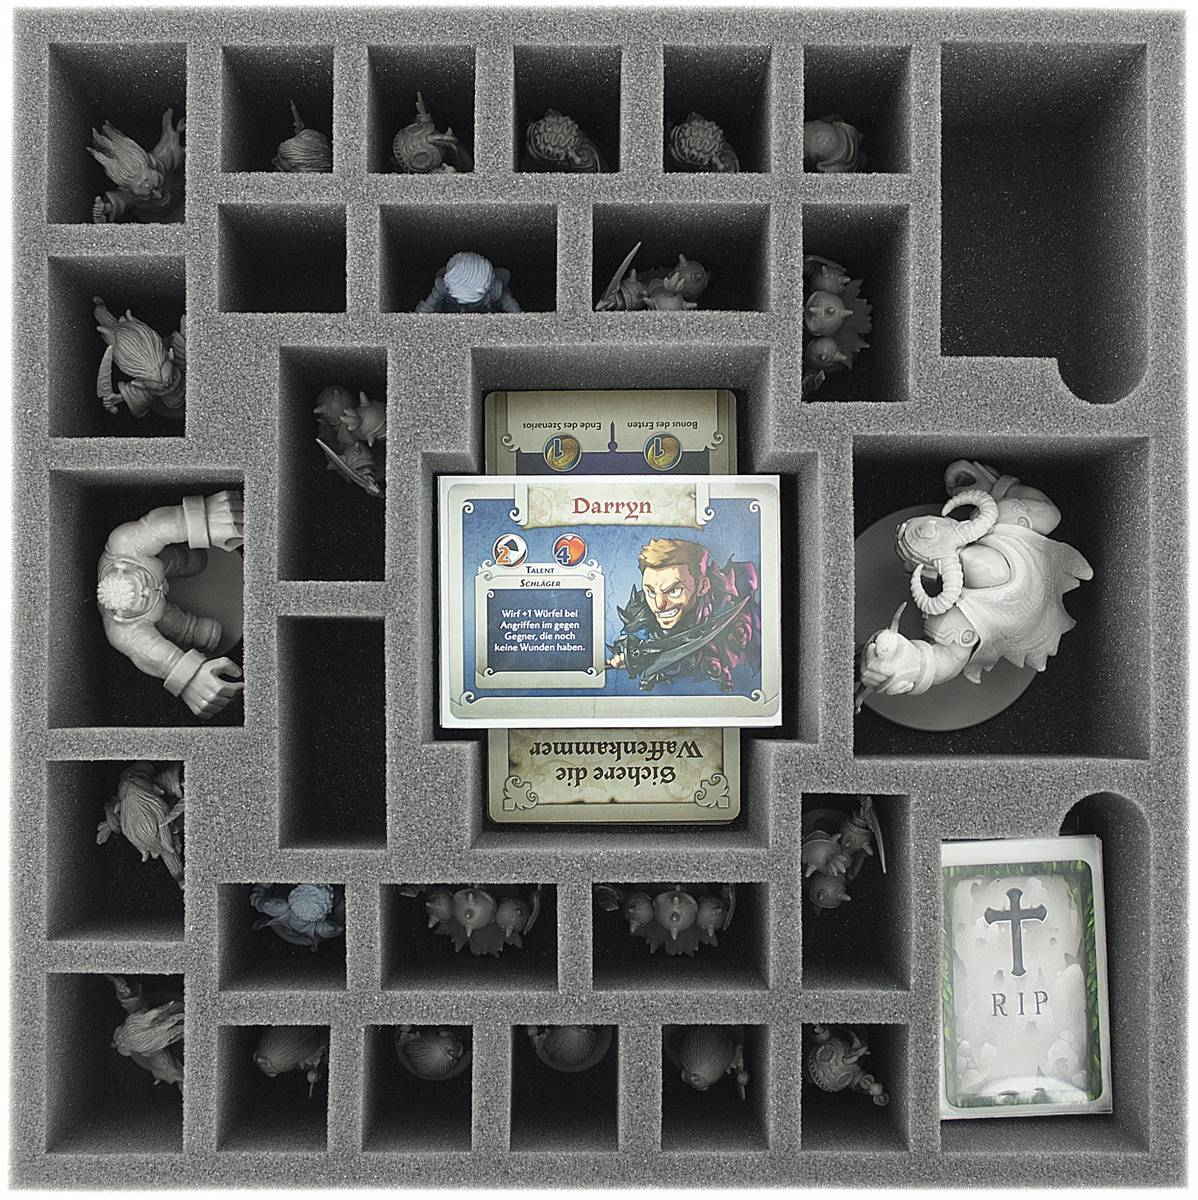 AG075AQ06 75 mm foam tray for Arcadia Quest - Beyond the Grave